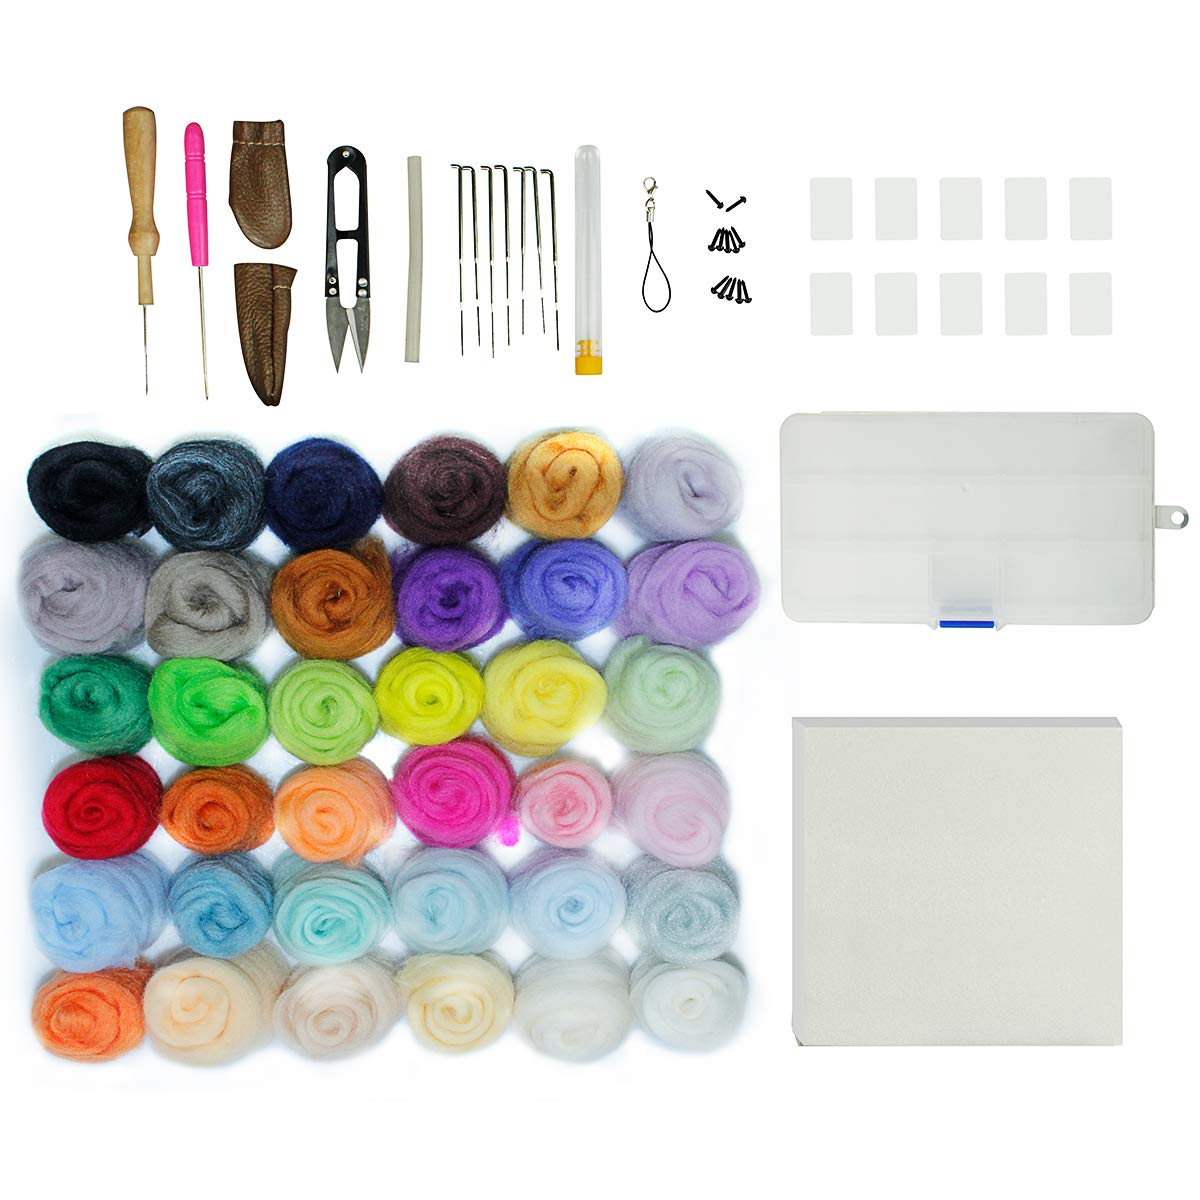 Needle Felting Kit 36 Colors Wool Roving Set Craft DIY Tool Kit for Felted Animal Gift Present Aneforall